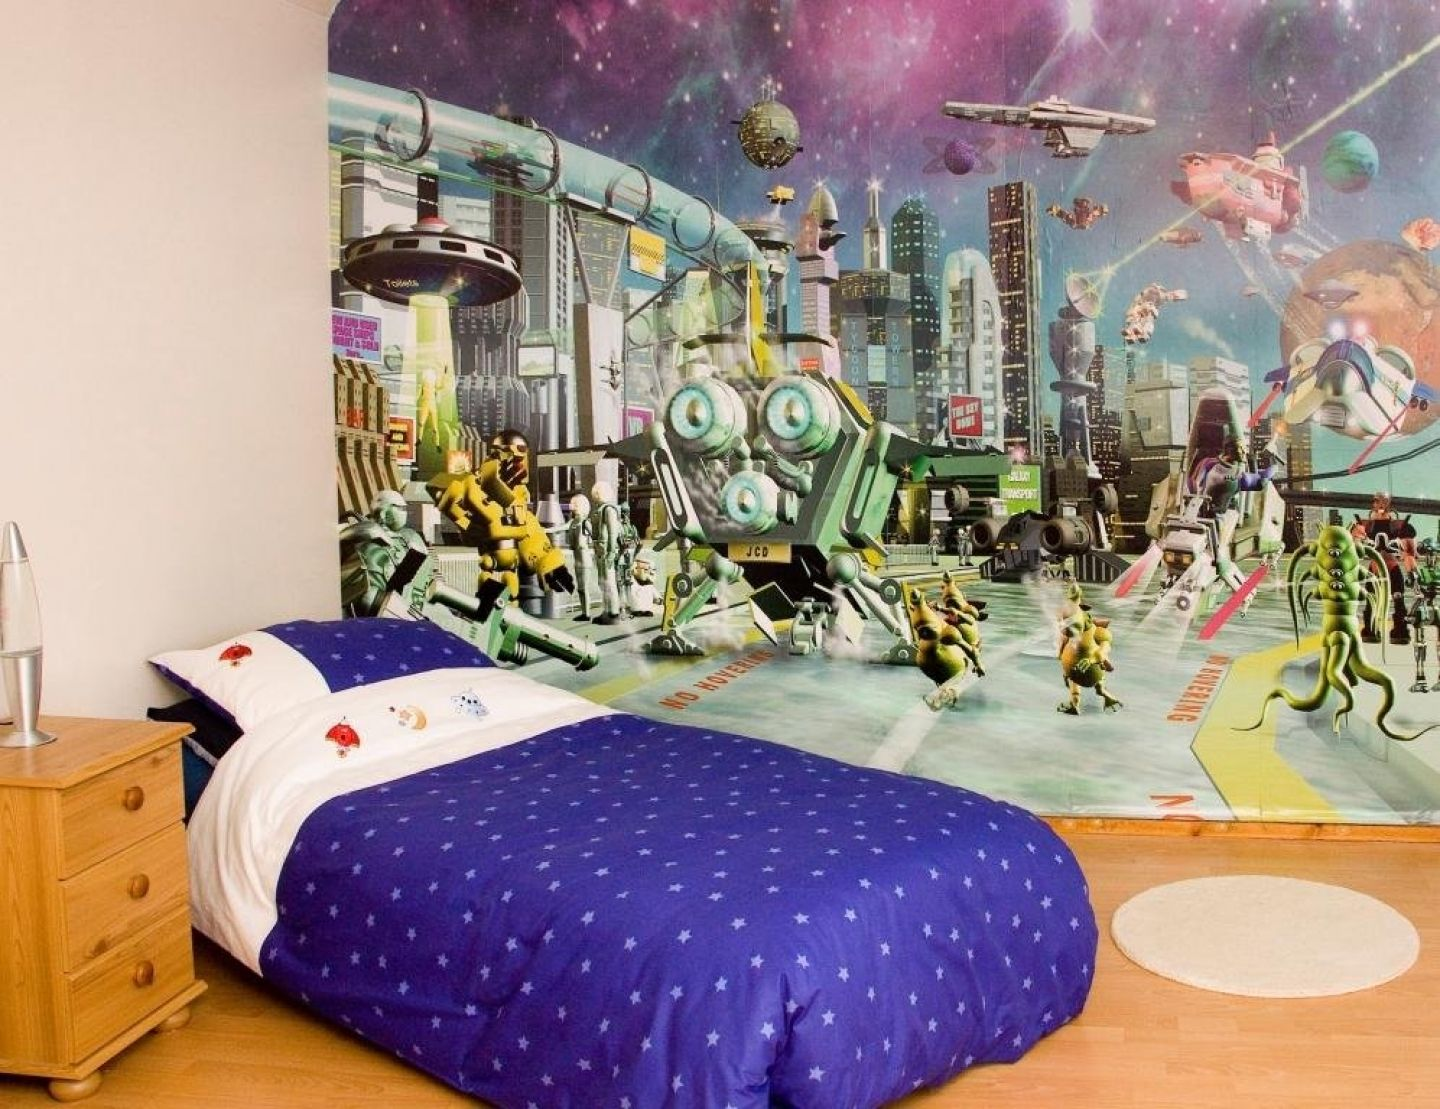 Wallpaper For Your Room Inspiring Space Themed Room Ideas For Your Home  Themed Rooms